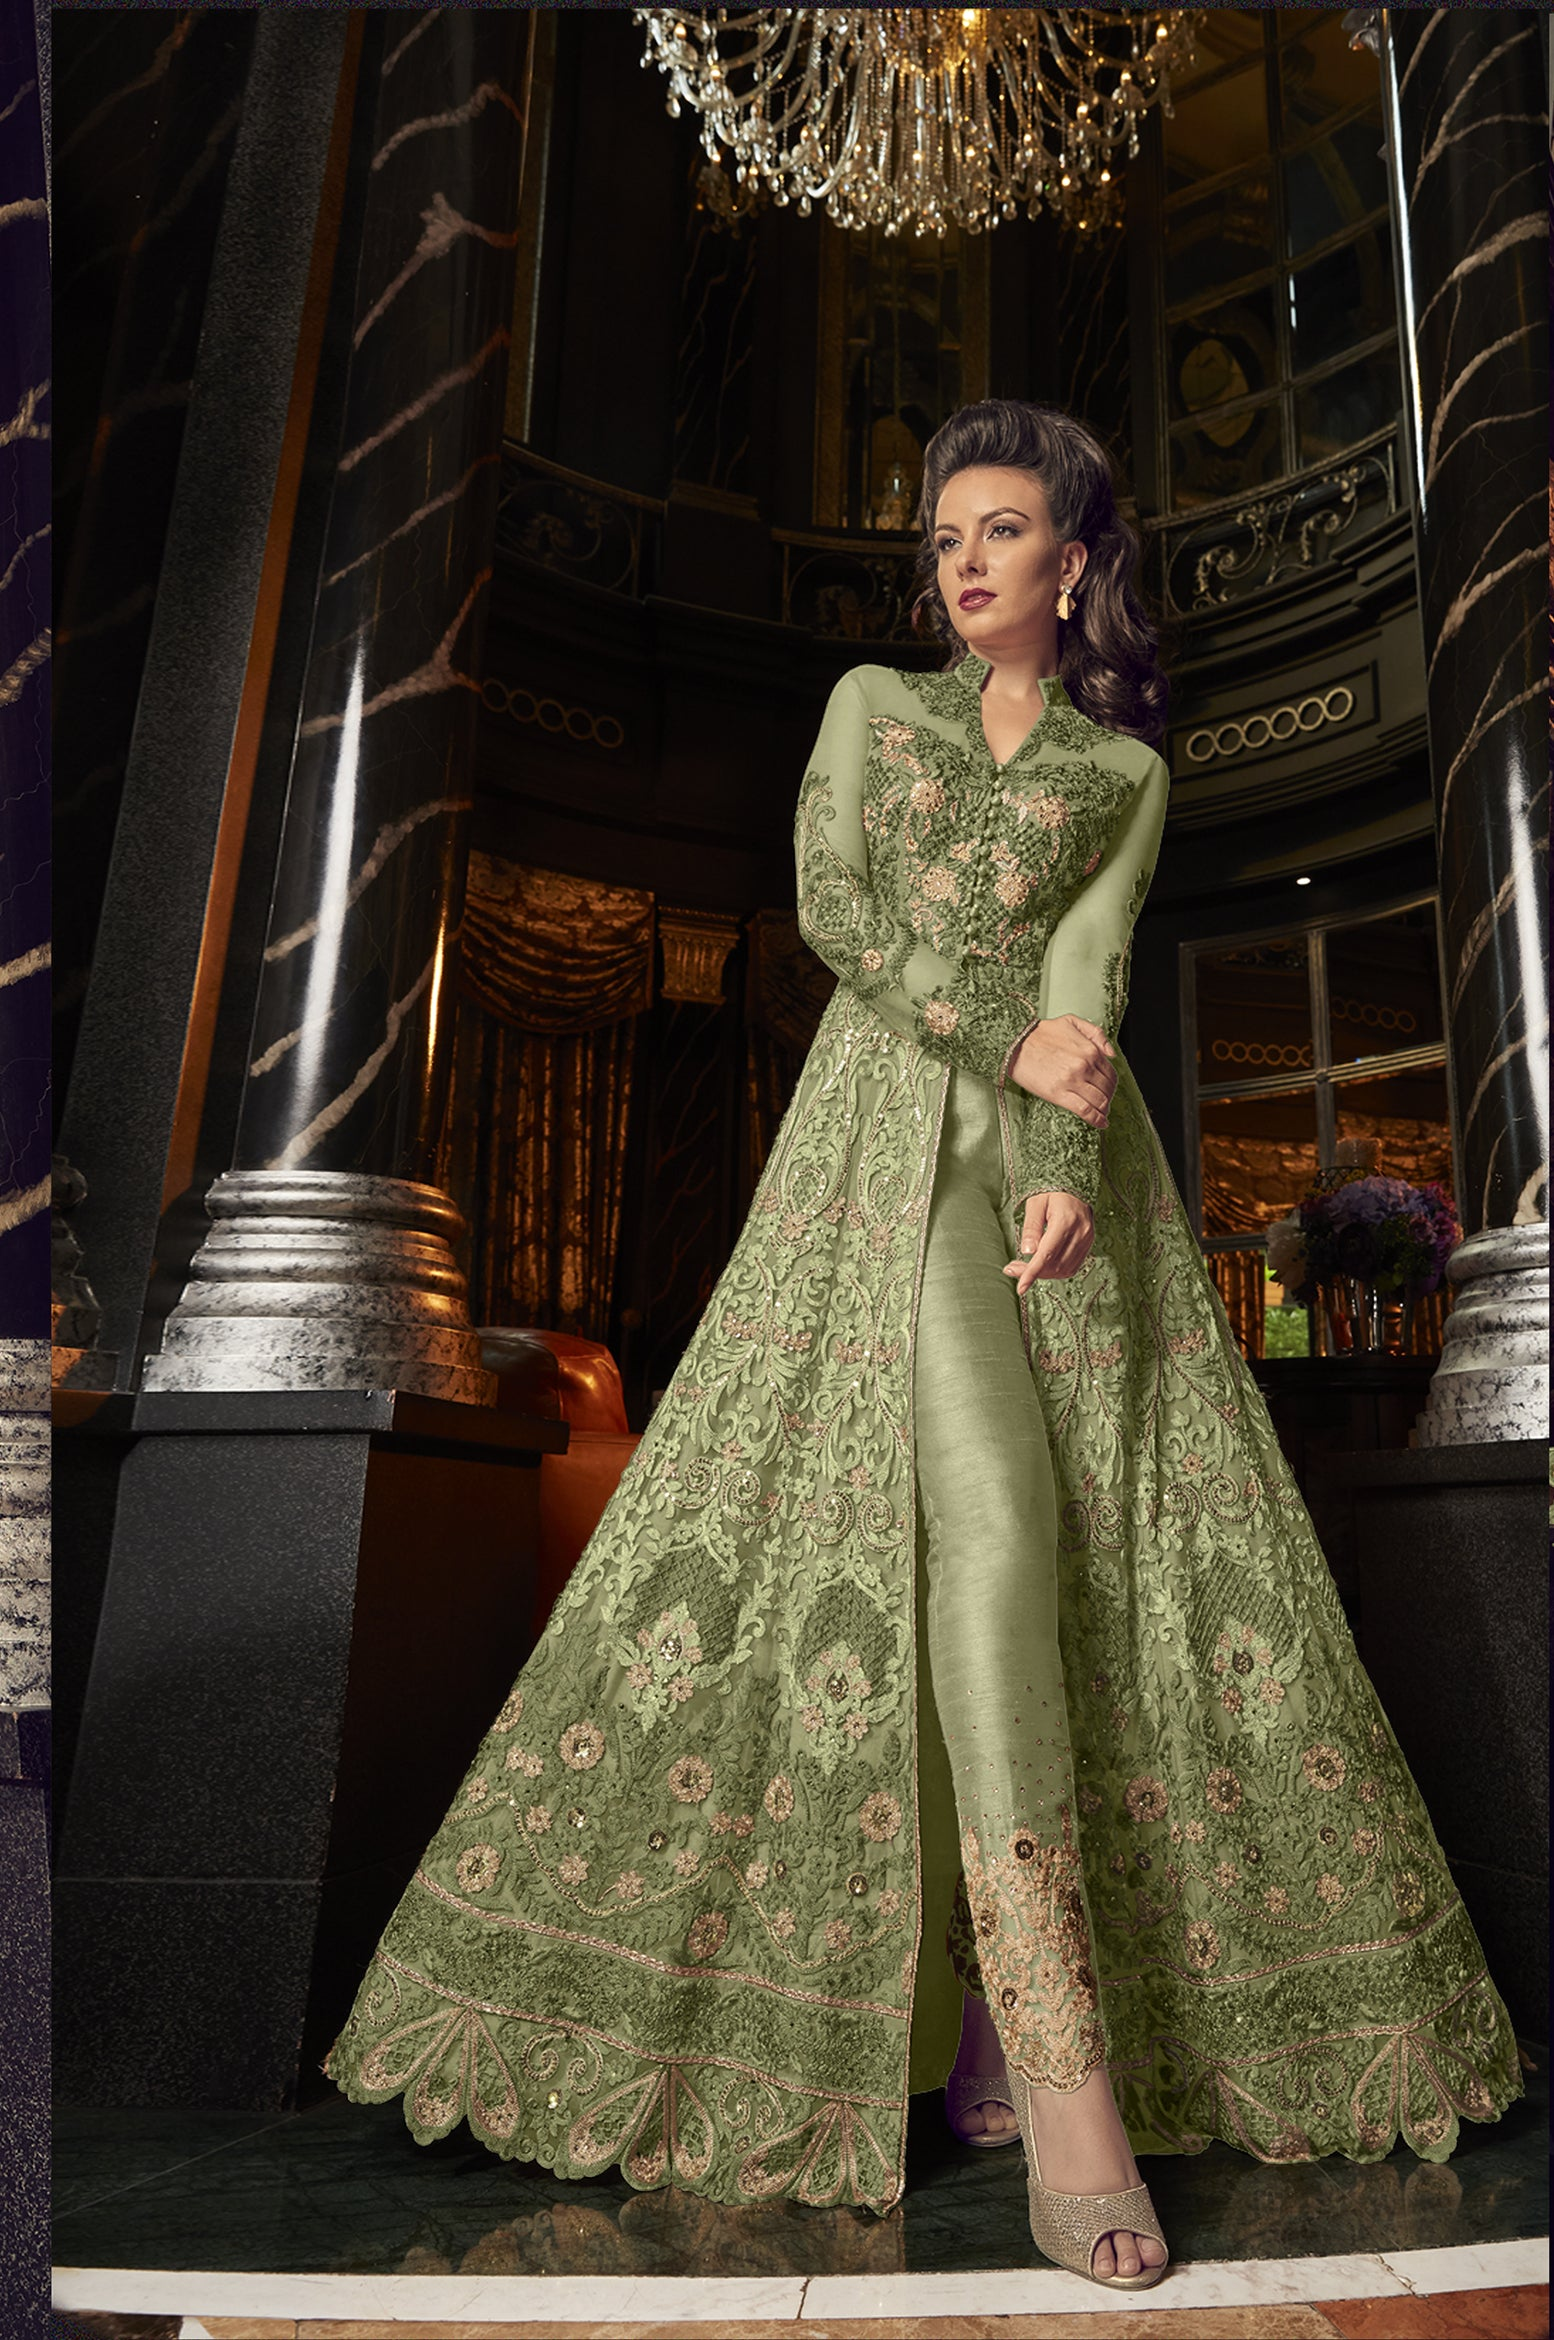 Olive Green Embroidered Net Party Wear Dresses Salwar Suit Design Latest